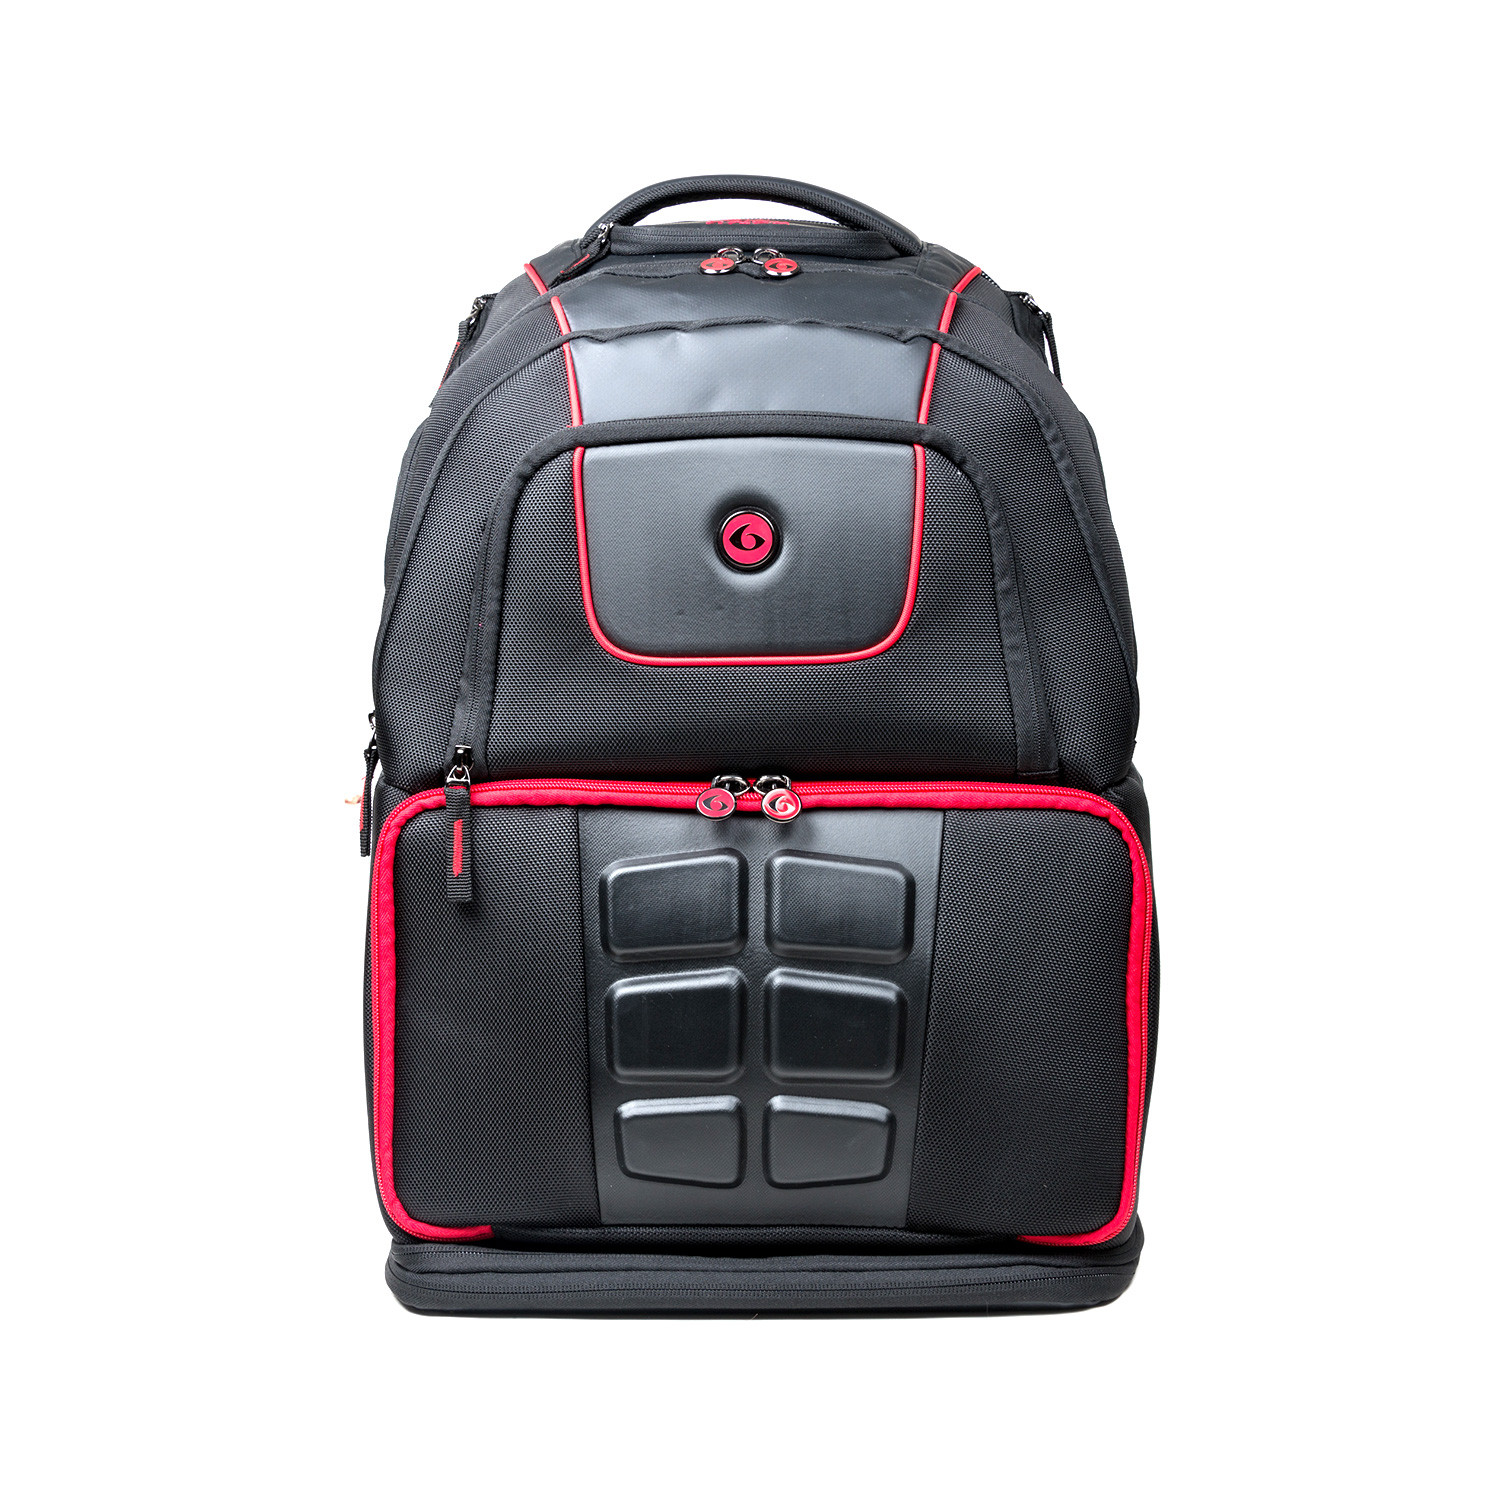 Elite voyager backpack 6 pack fitness touch of modern